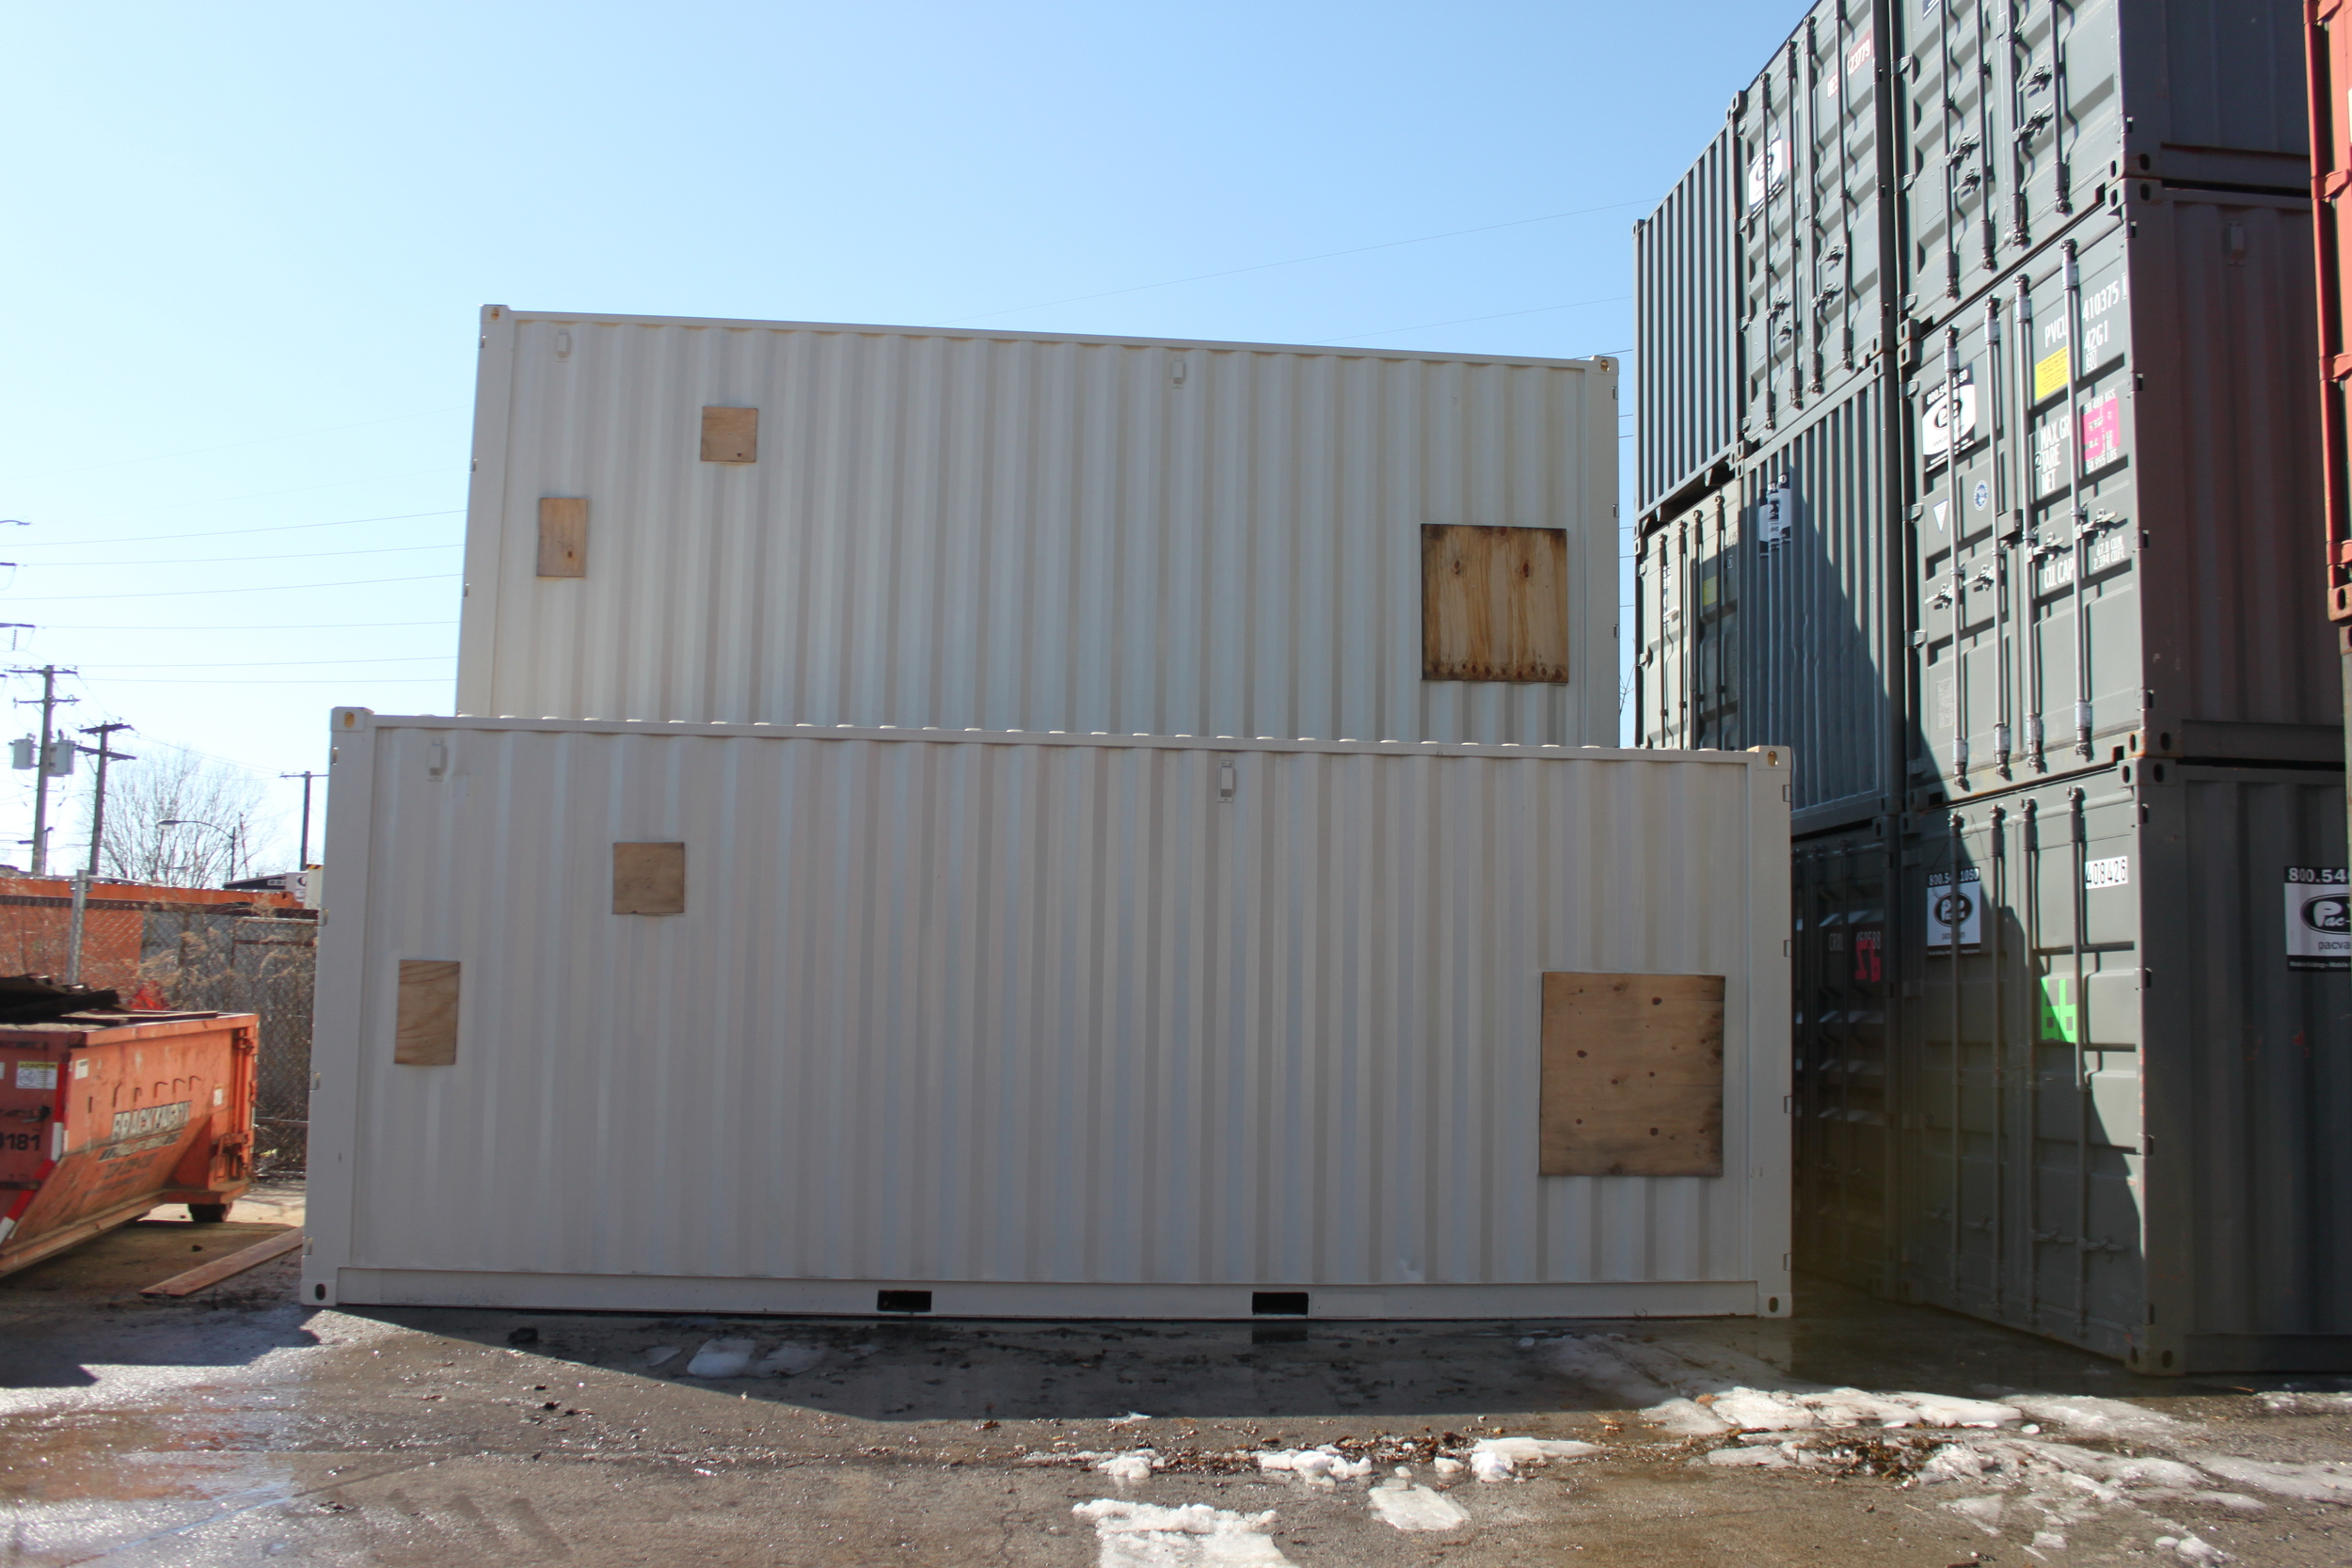 24' modified containers stacked up